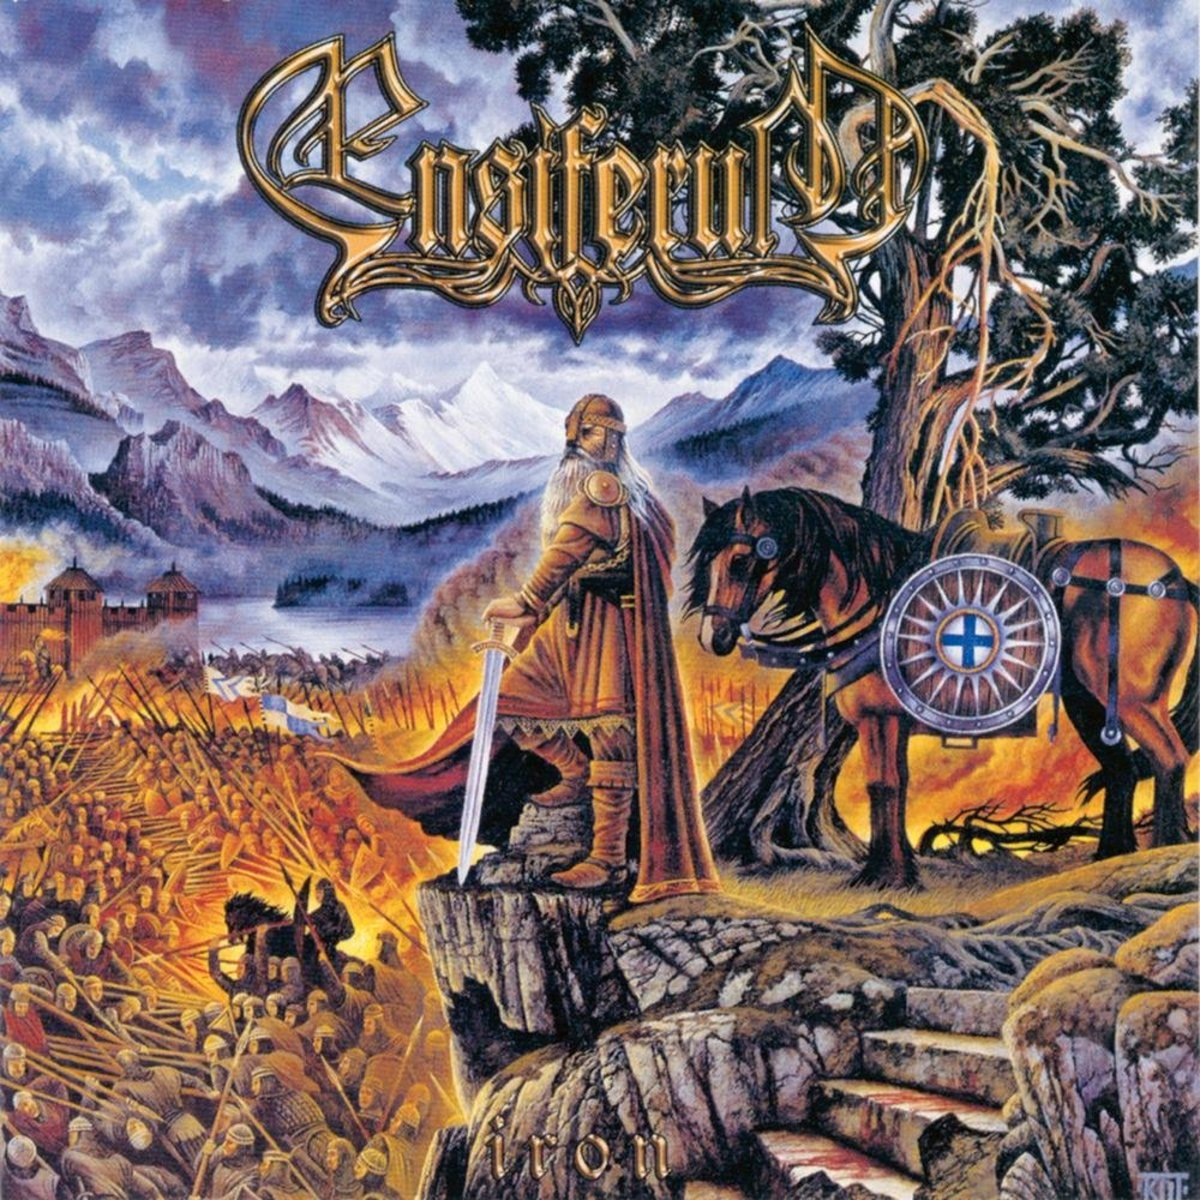 Ensiferum Iron: The Return of Jari Maenpaa and Ensiferum Makes Another Strong Folk Metal Album